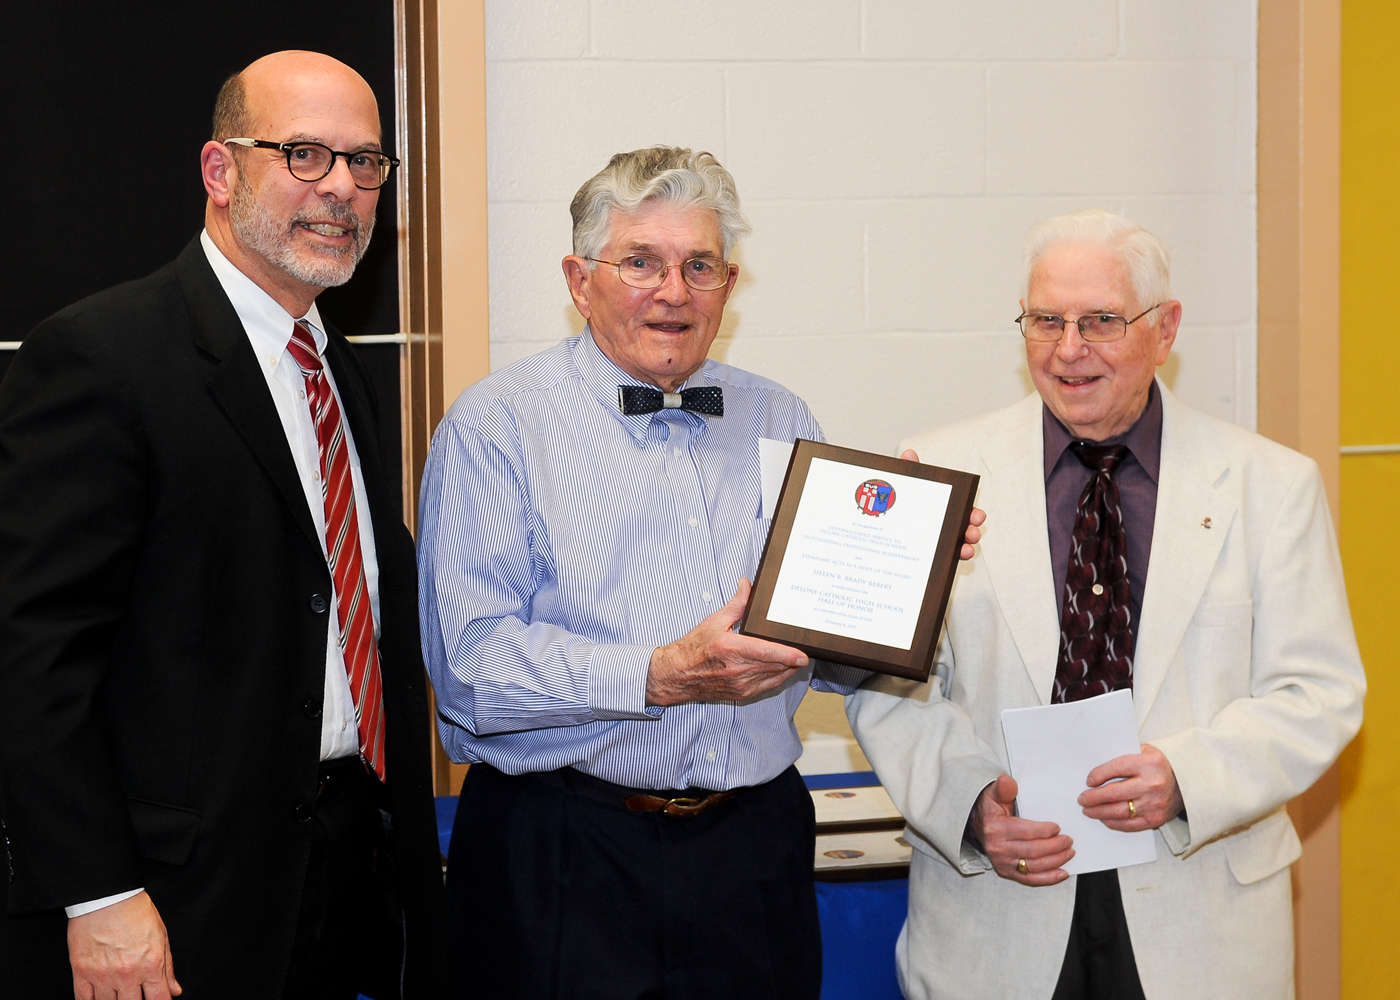 Donald R. Brady '48 (center) and Bernard C. Brady '50 (right) accept induction into the Delone Catholic Hall of Honor on behalf of their mother, Helen B. Brady Rebert.